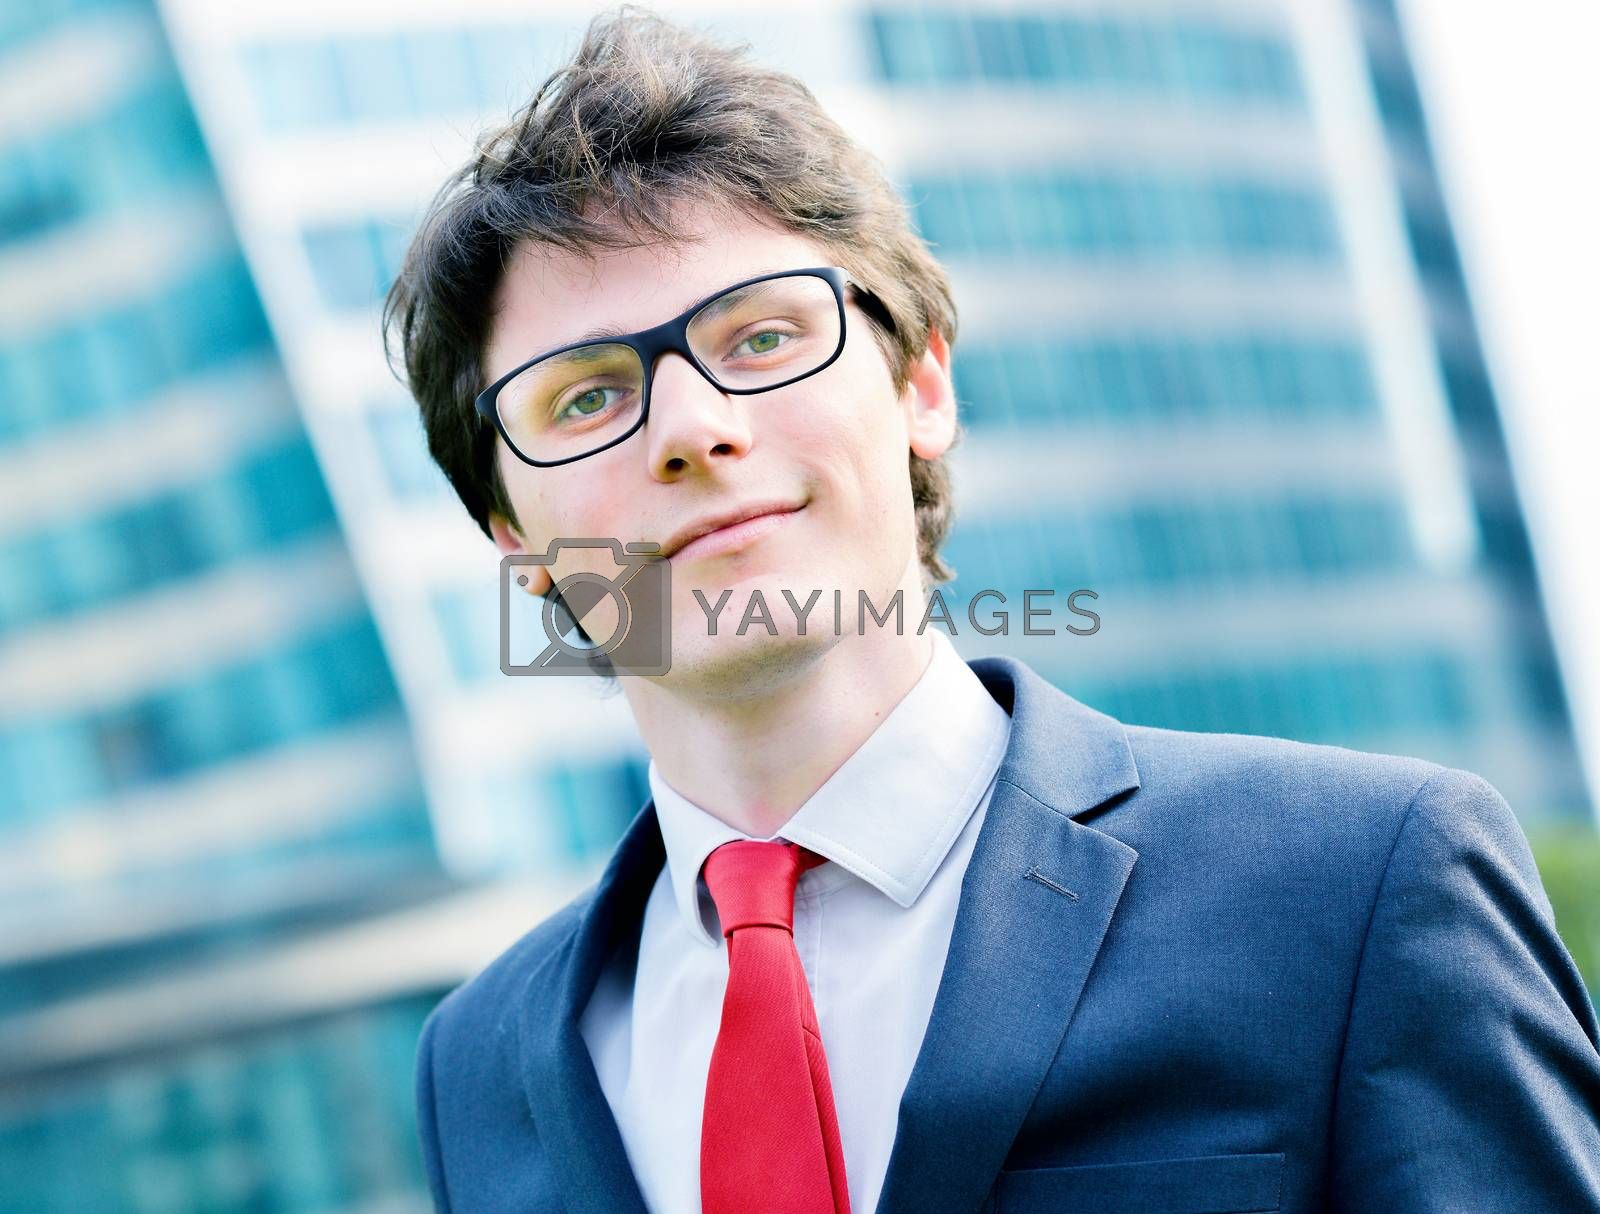 Royalty free image of Outdoor portrait of a dynamic junior executive smiling by pixinoo